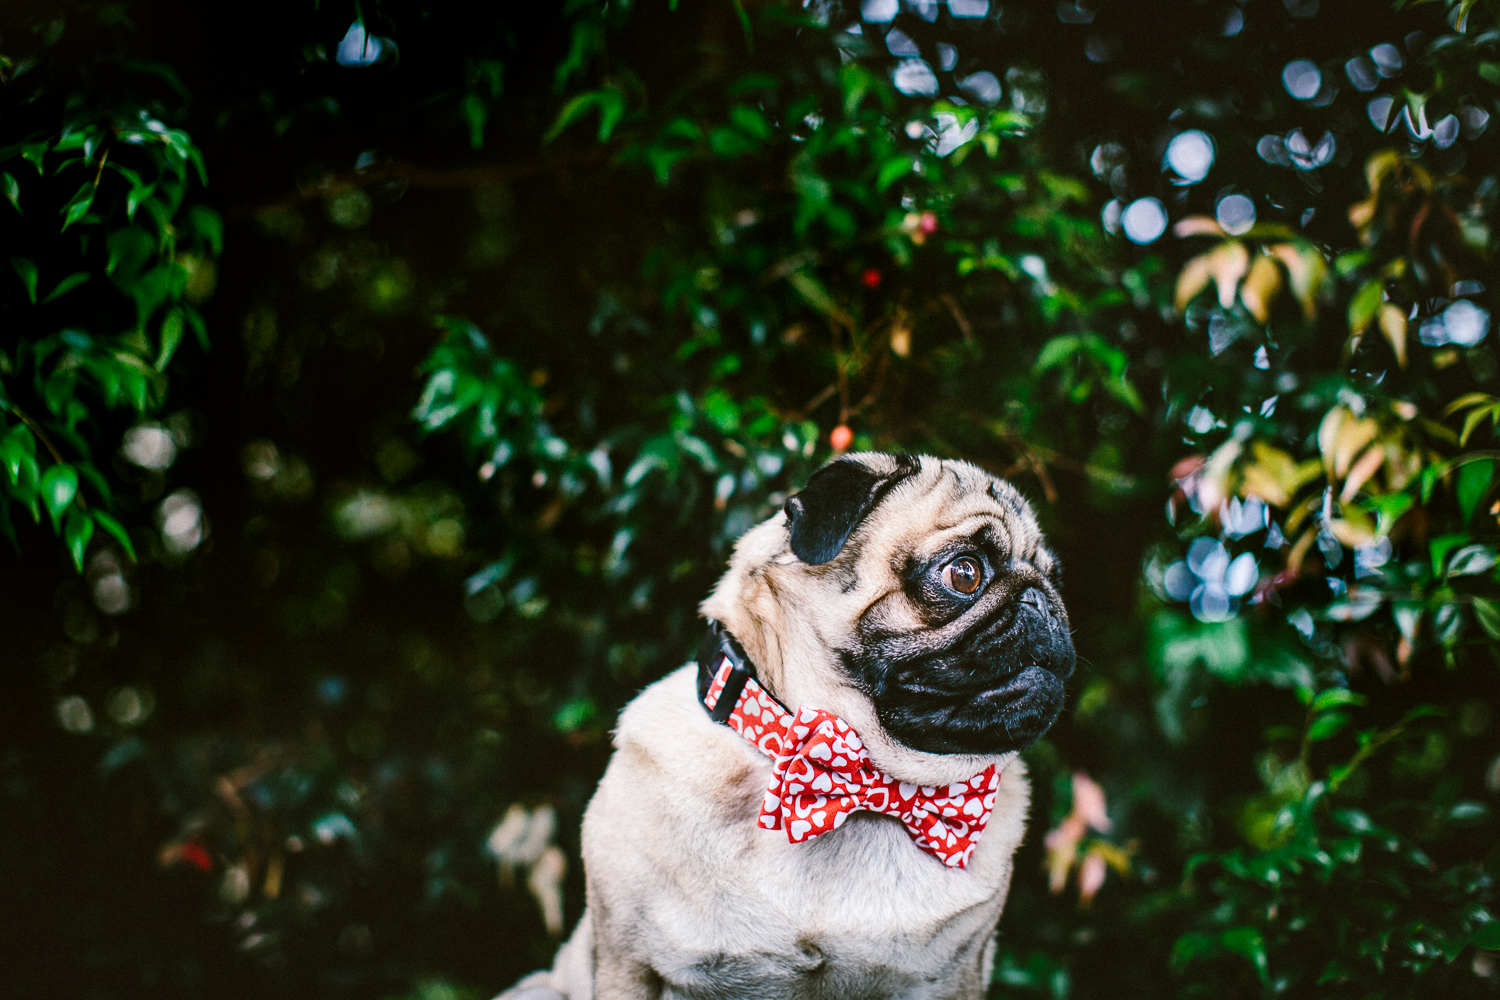 11_twoguineapigs_pet_photography_ohjaffa_vday_bowtie_collection_2015_1500.jpg